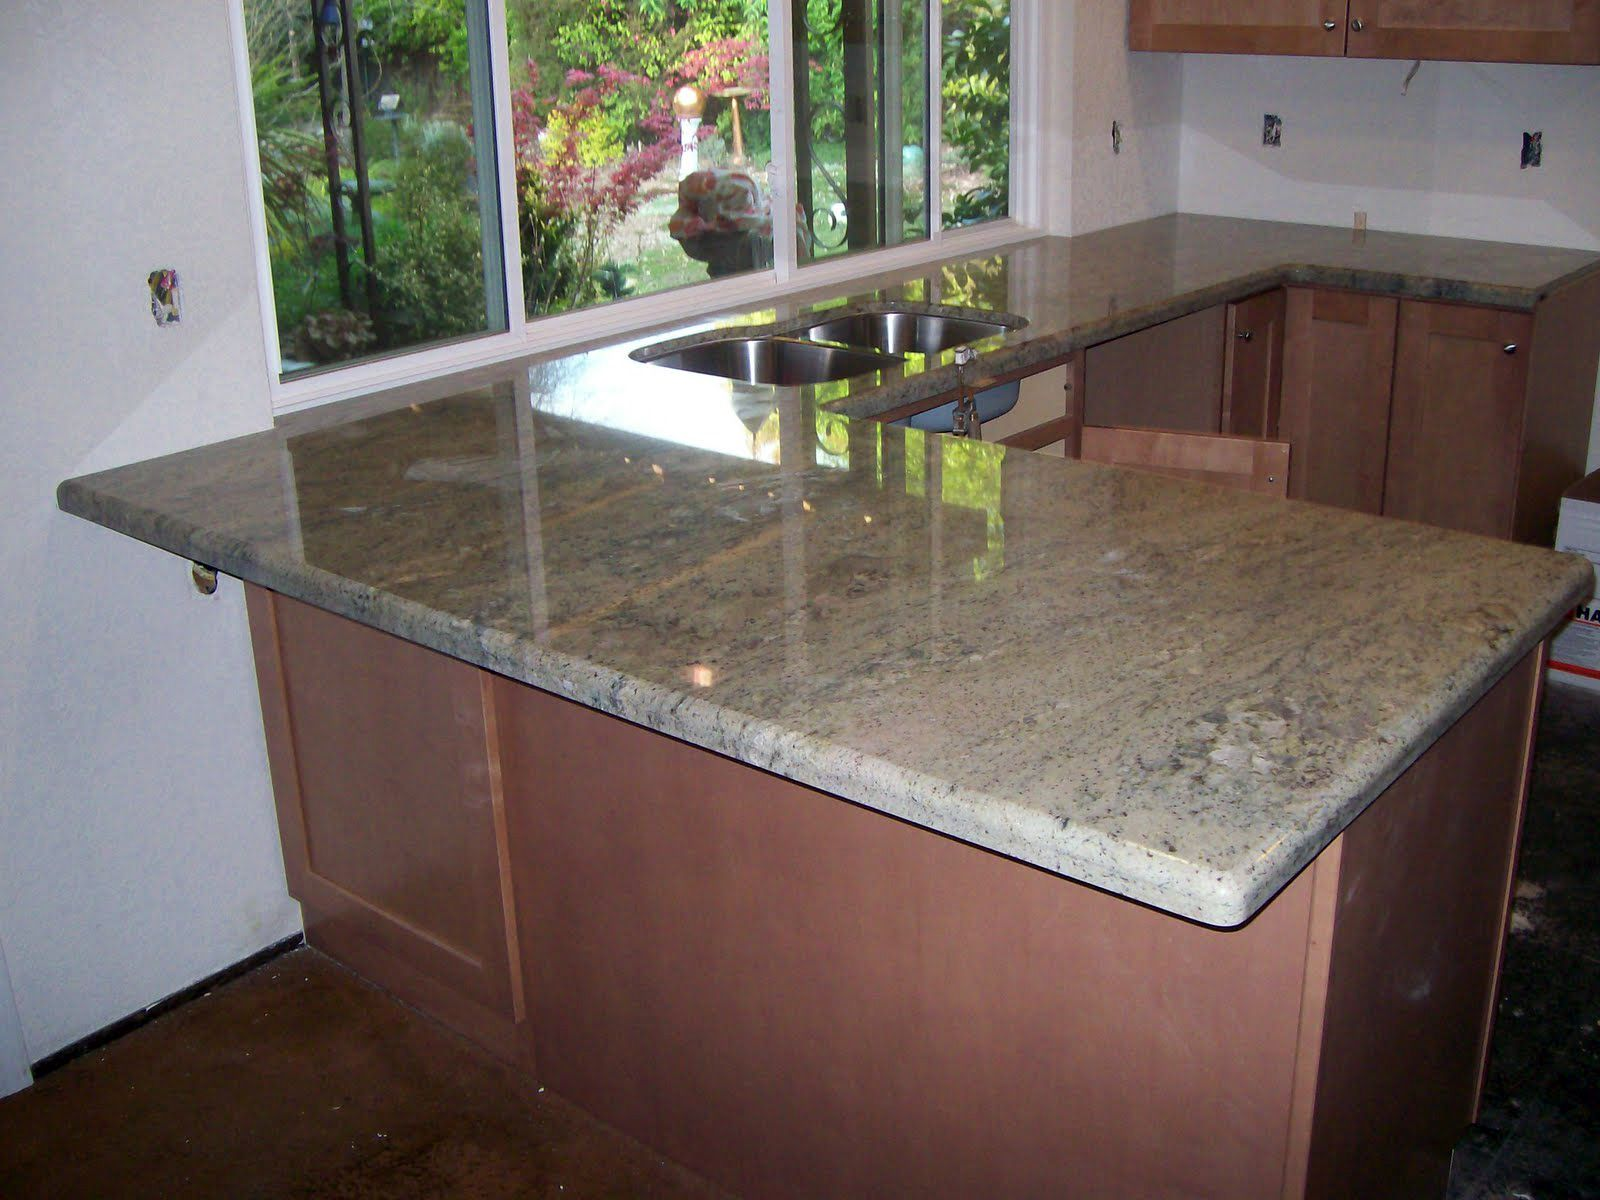 Typhoon Green Granite From India Is Available In Both Tiles And